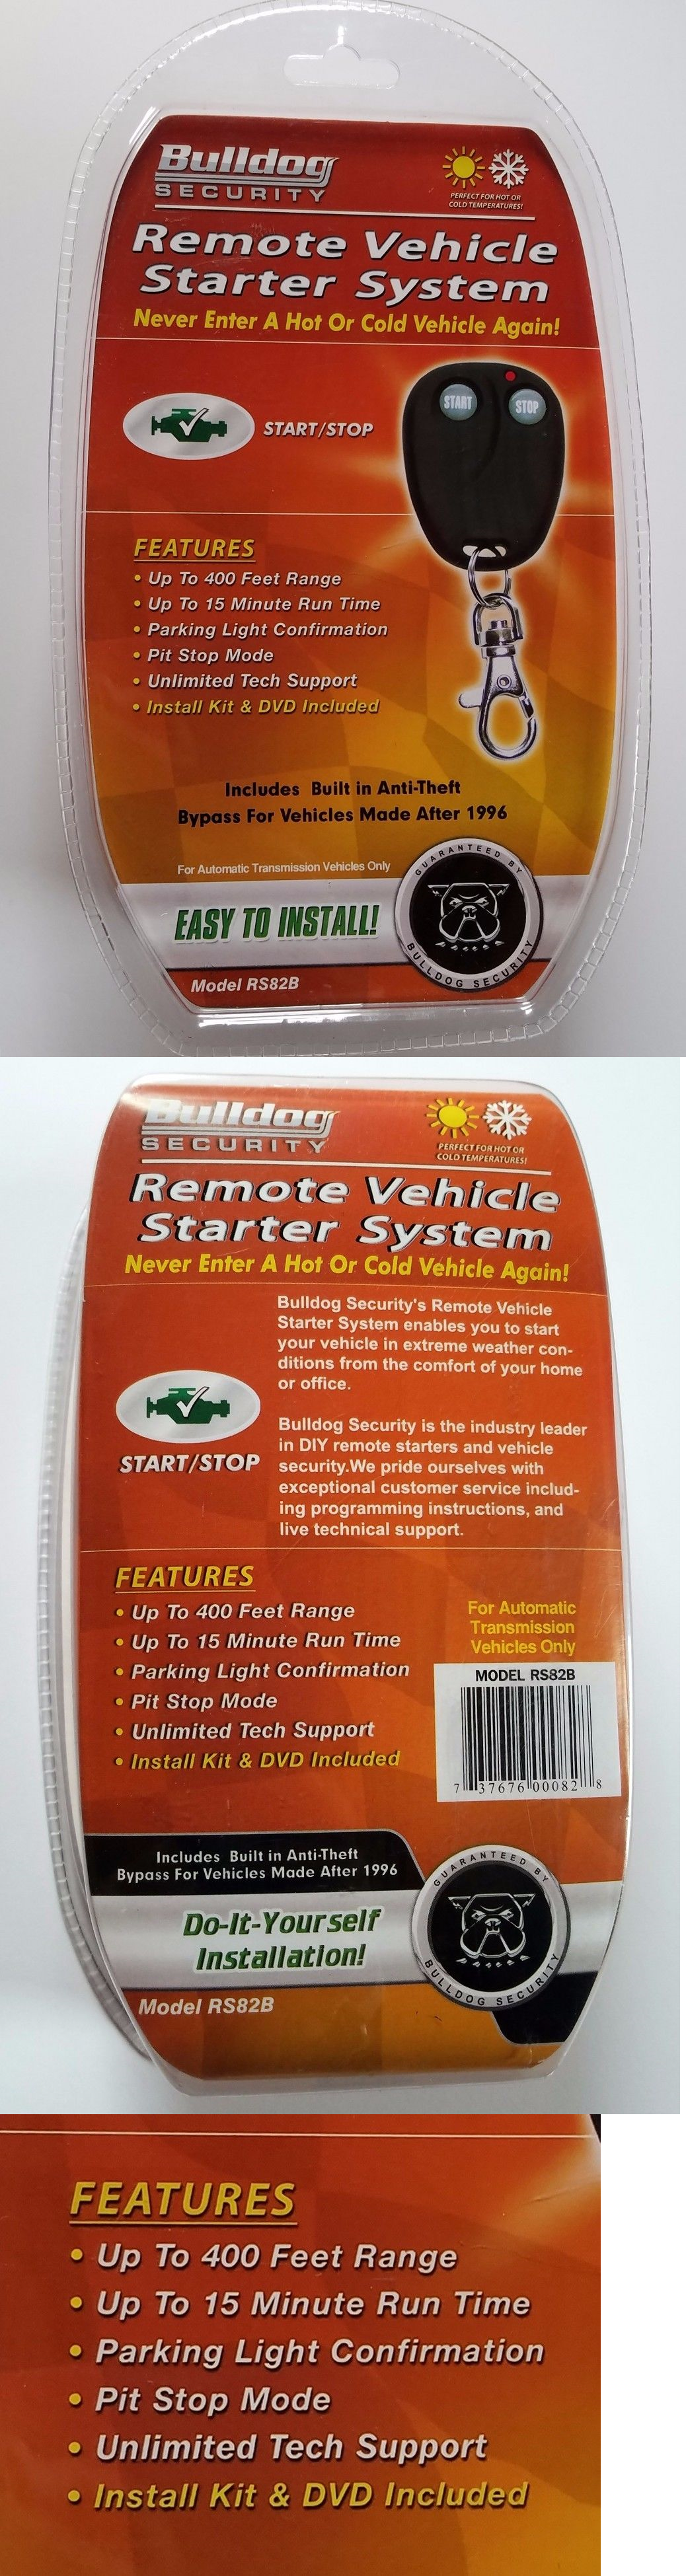 Great Bulldog Security Remote Starter With Keyless Entry Tall Super Switch Wiring Clean Security Bulldog Ibanez Dimarzio Youthful Bulldog Alarms Wiring ColouredOff Grid Solar Wiring Diagram Security Remote Vehicle Starter System Model RS82 New In Box 400ft Rng